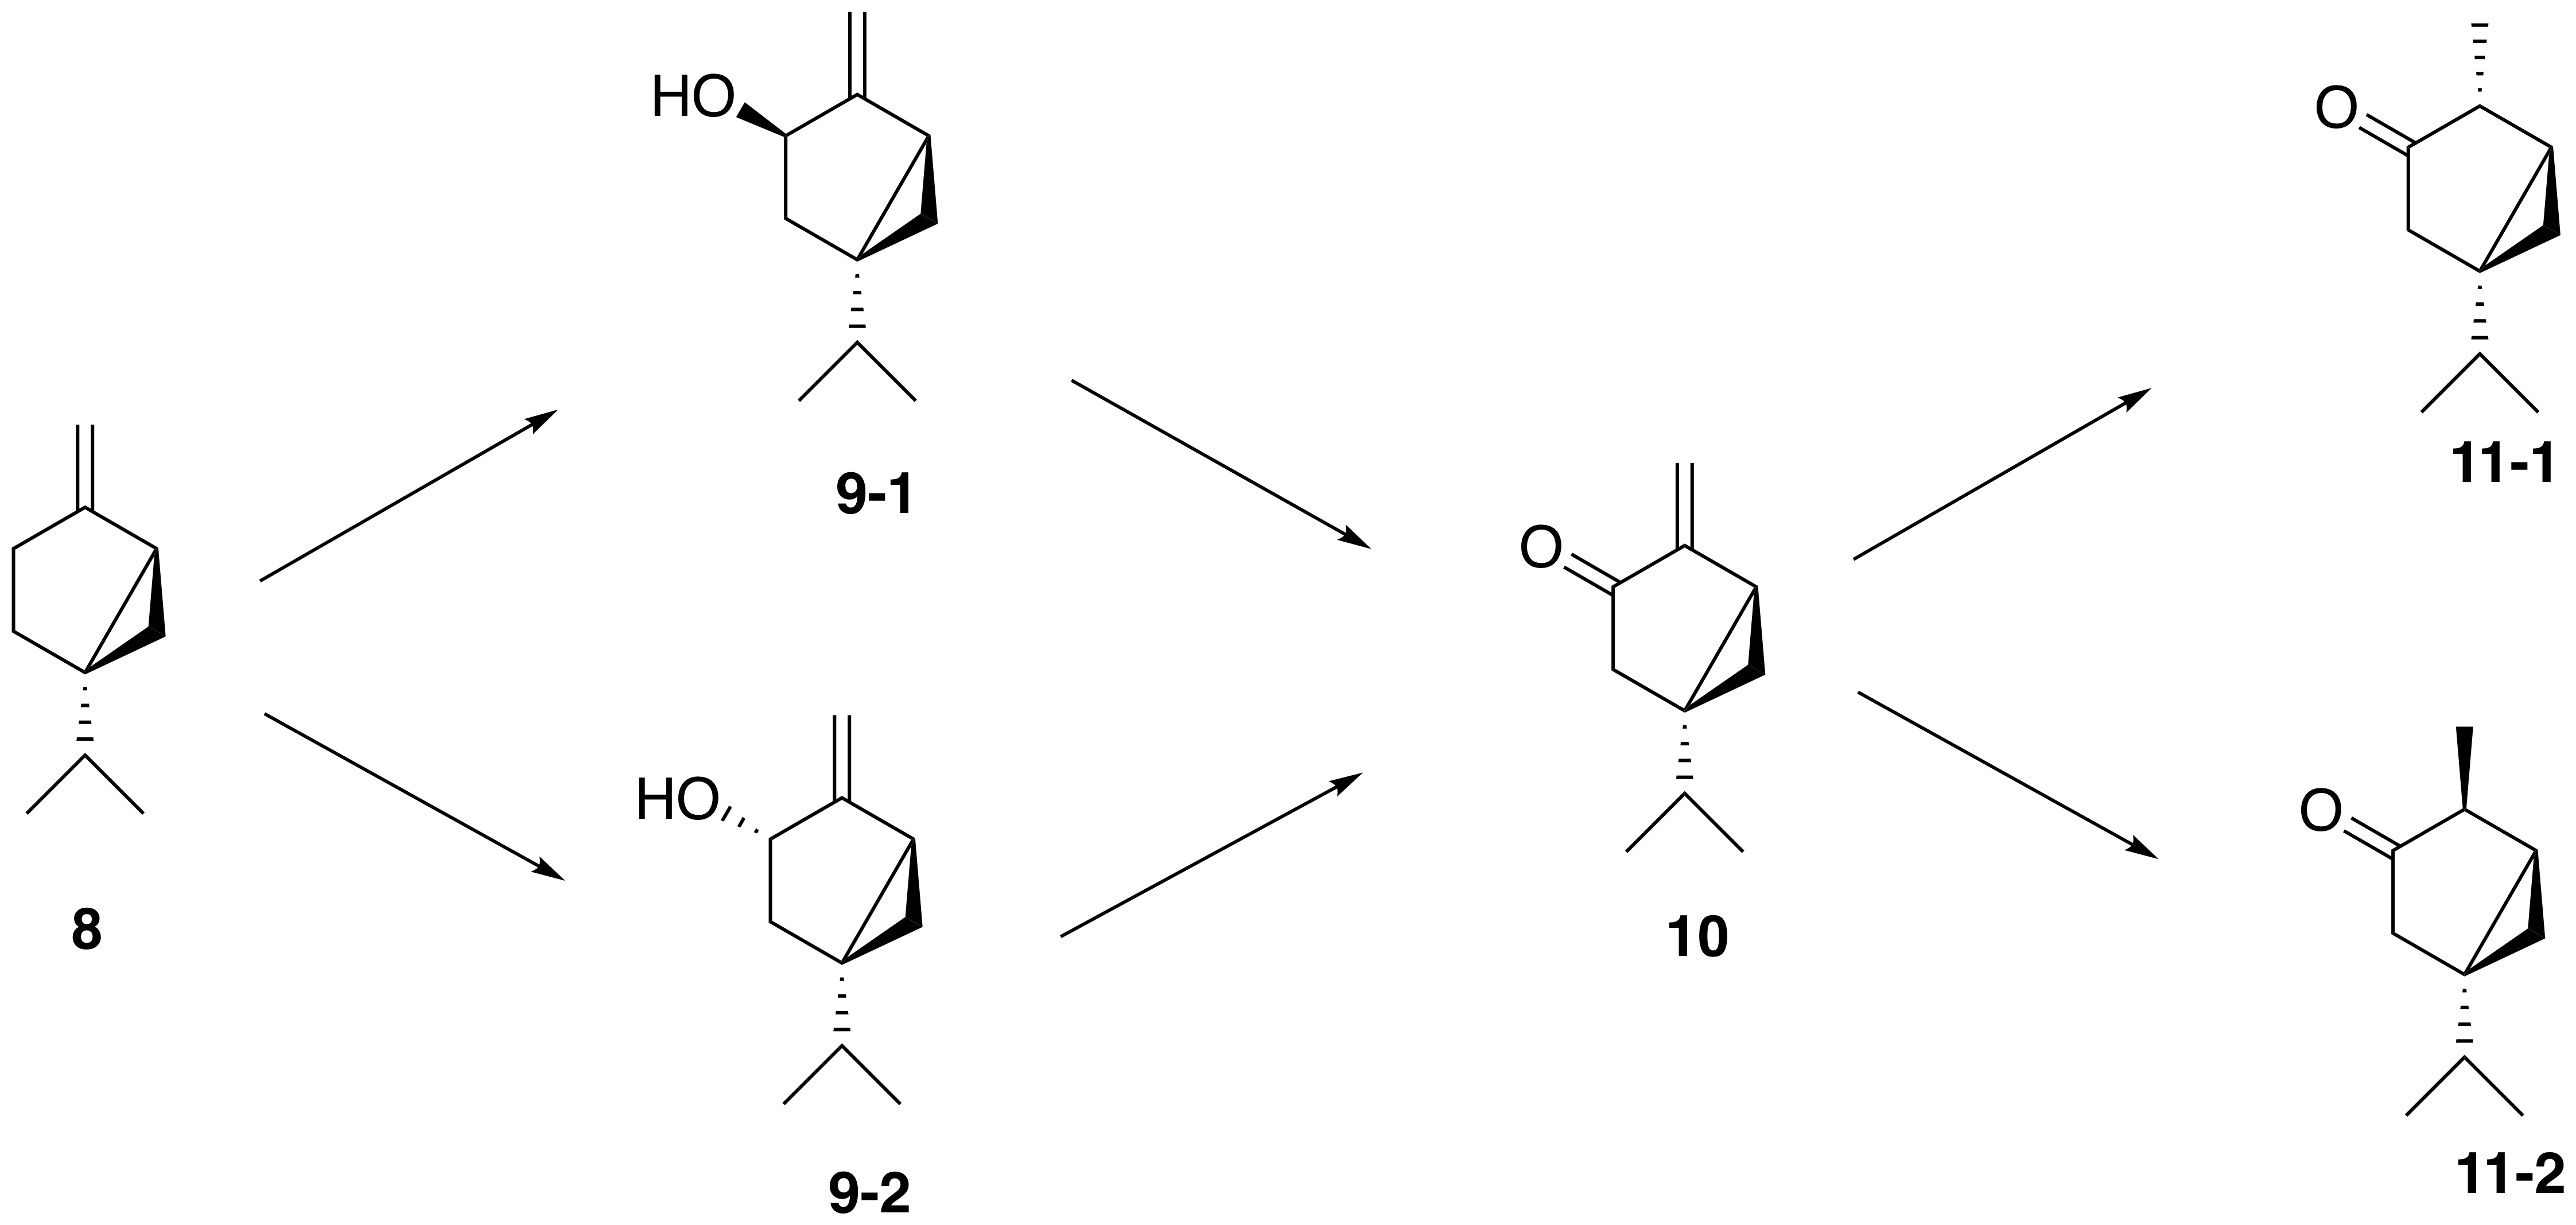 Proposed synthesis of thujone from sabinene